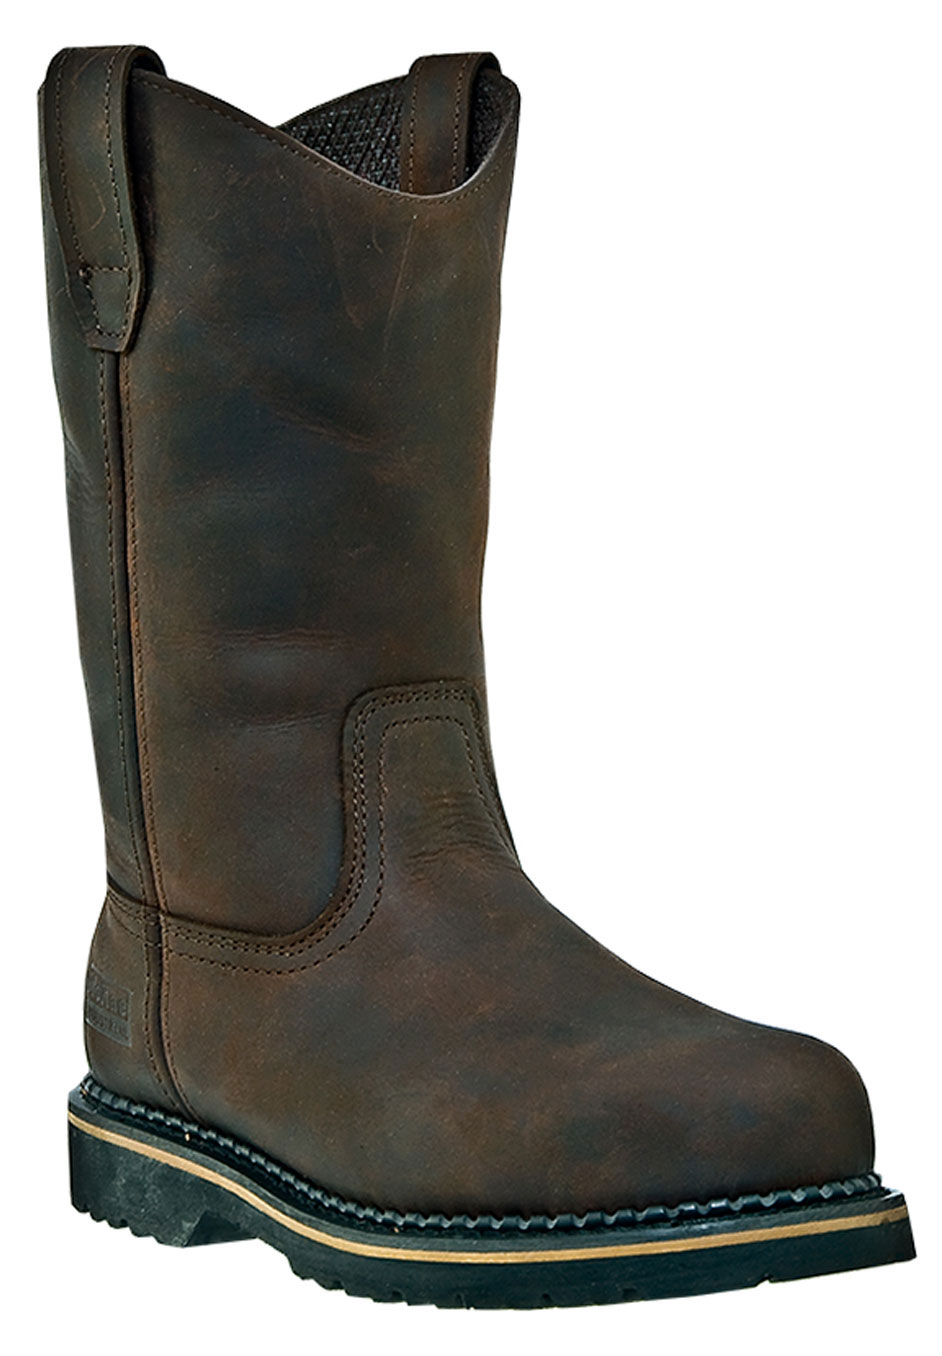 "McRae 11"" Soft Toe Wellington Boots,"